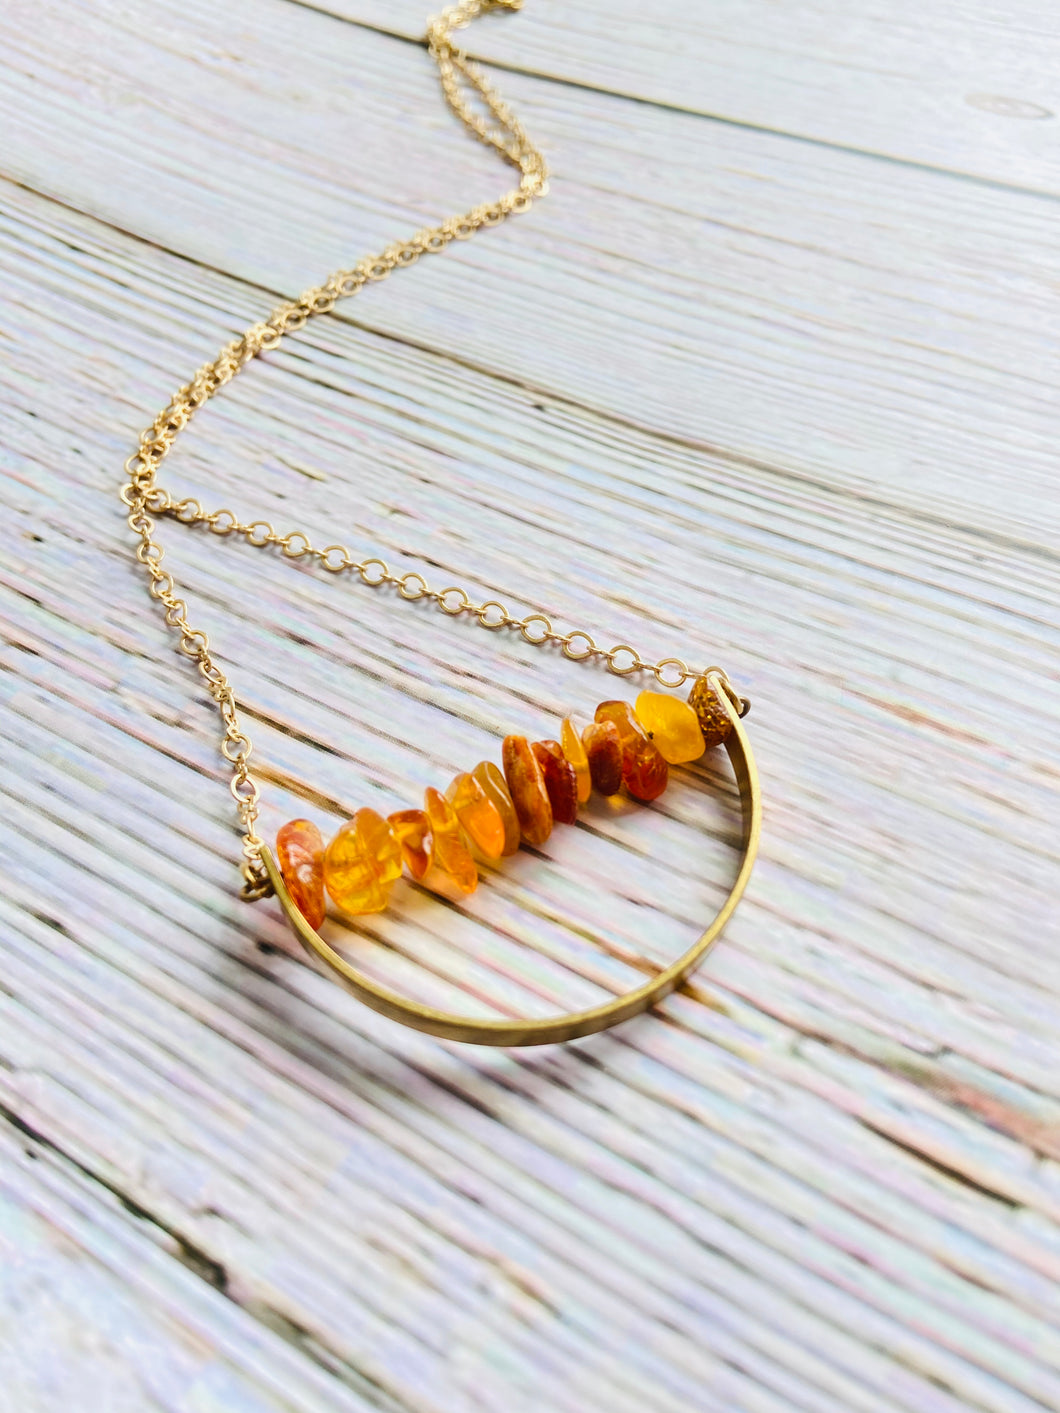 Amber Arc Necklace - Black Cat Modern Boho Handmade Jewelry